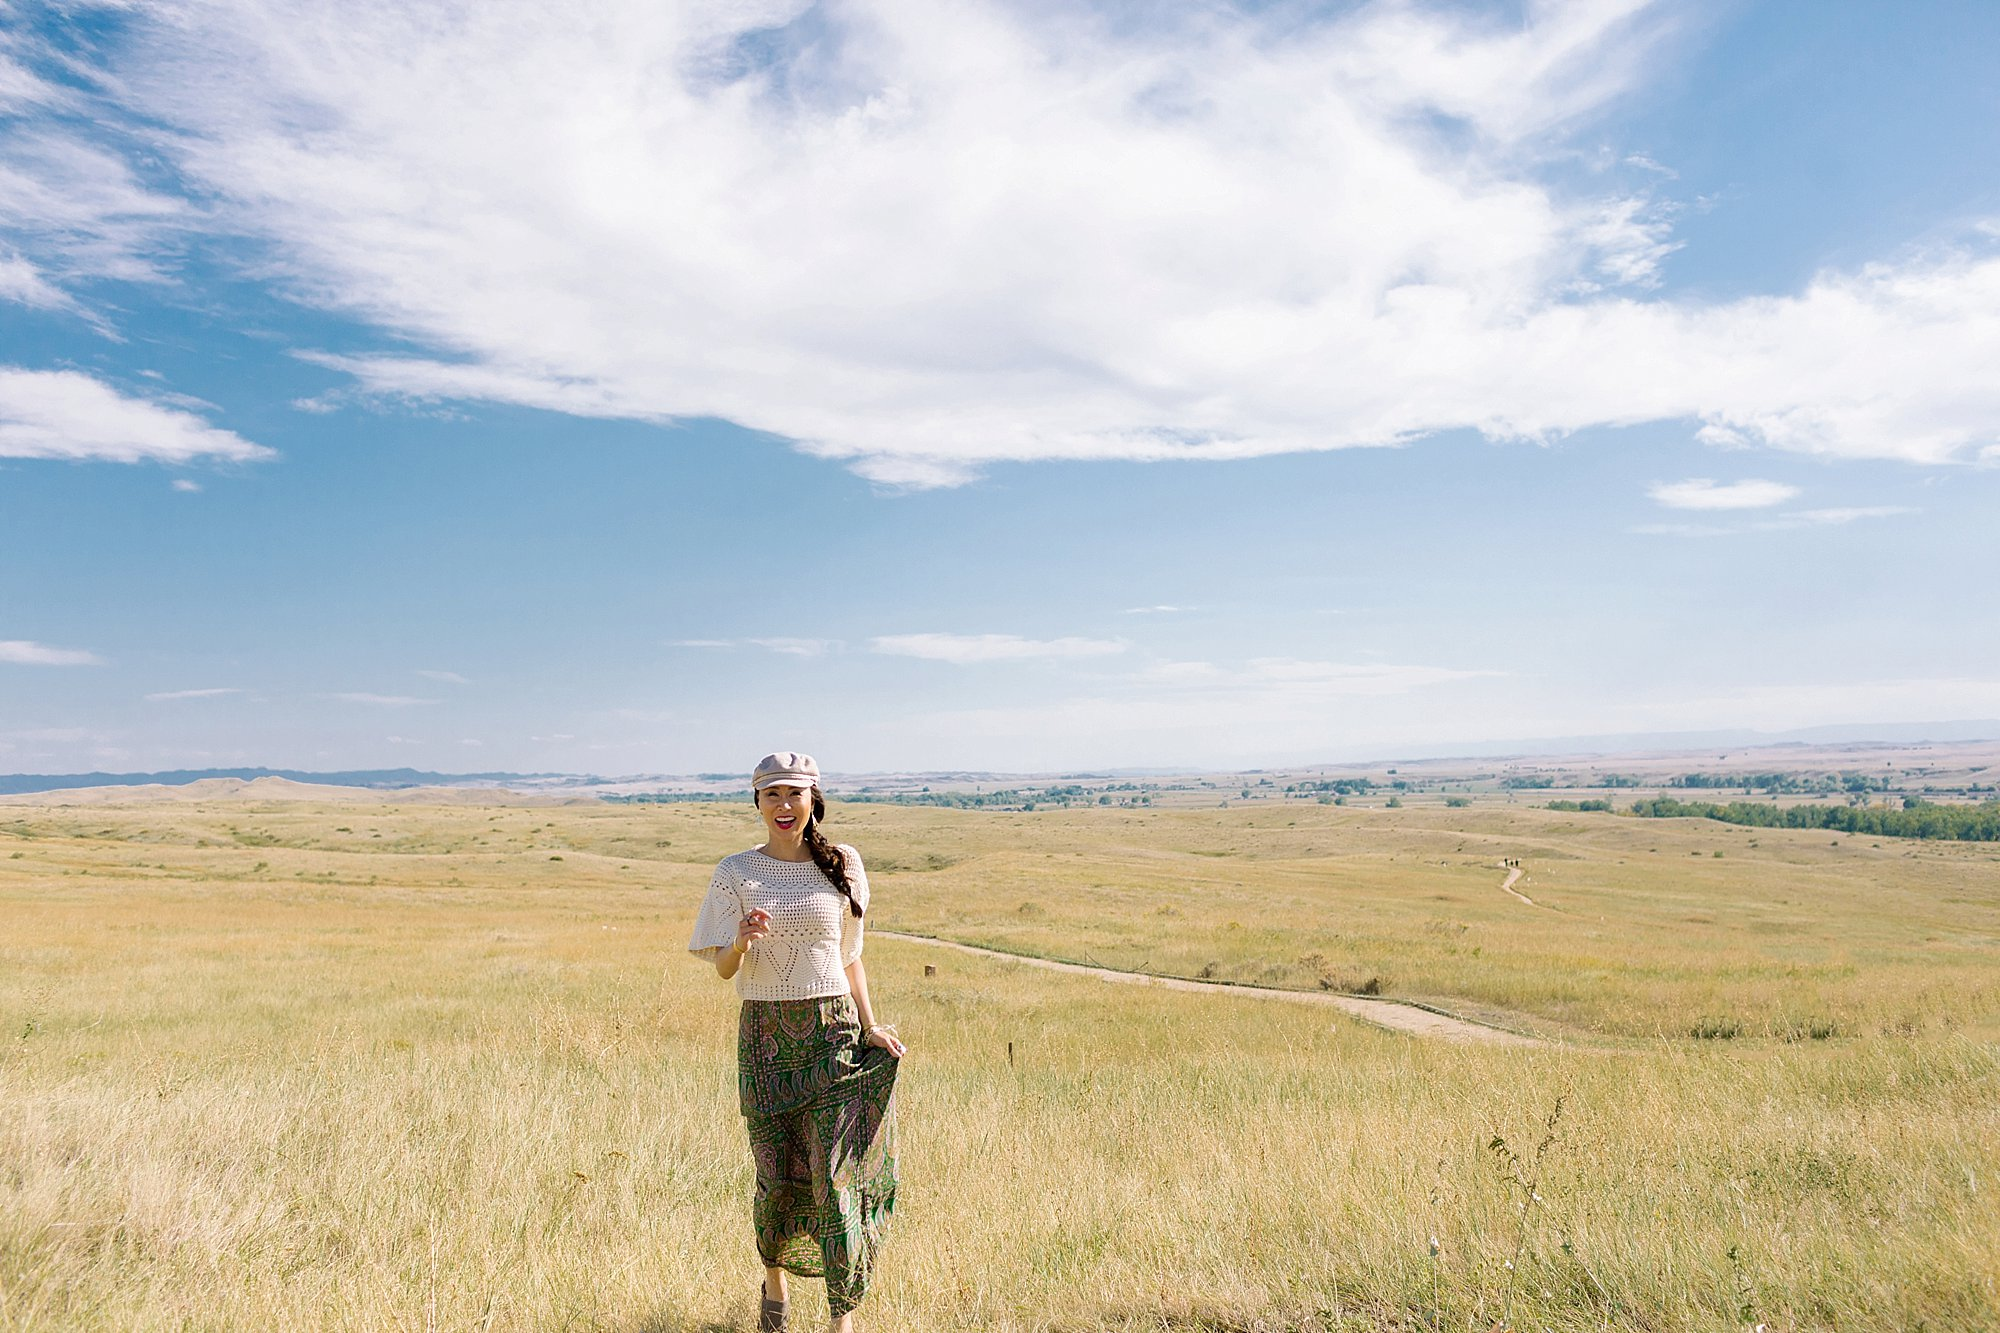 montana in fields Little Bighorn battlefield